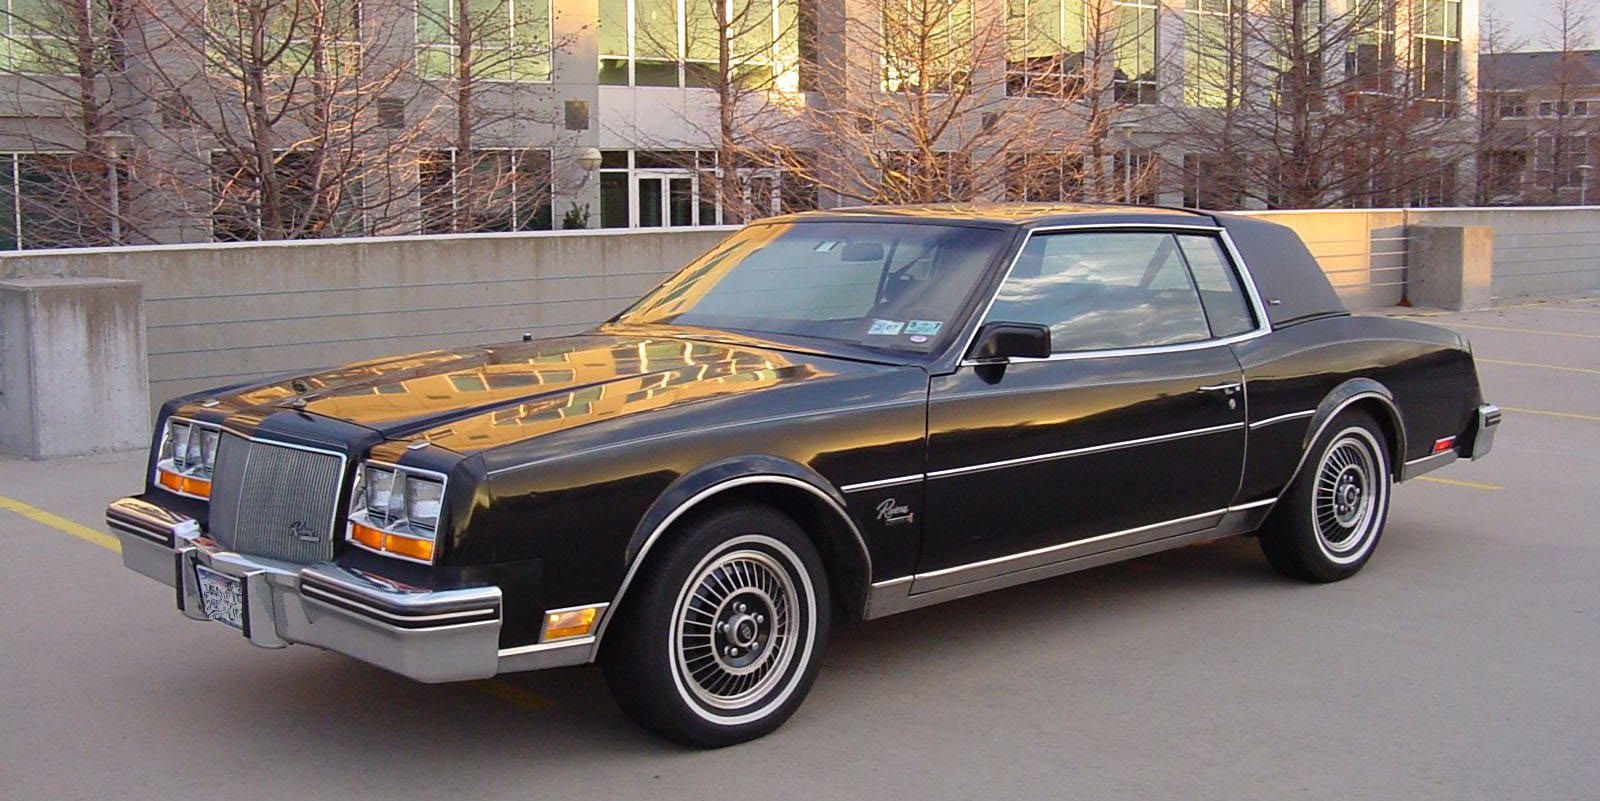 1977 buick lesabre bought this car from my dad clarence for 500 bucks when jimmy was little mom had left for seattle so it was probly 1988